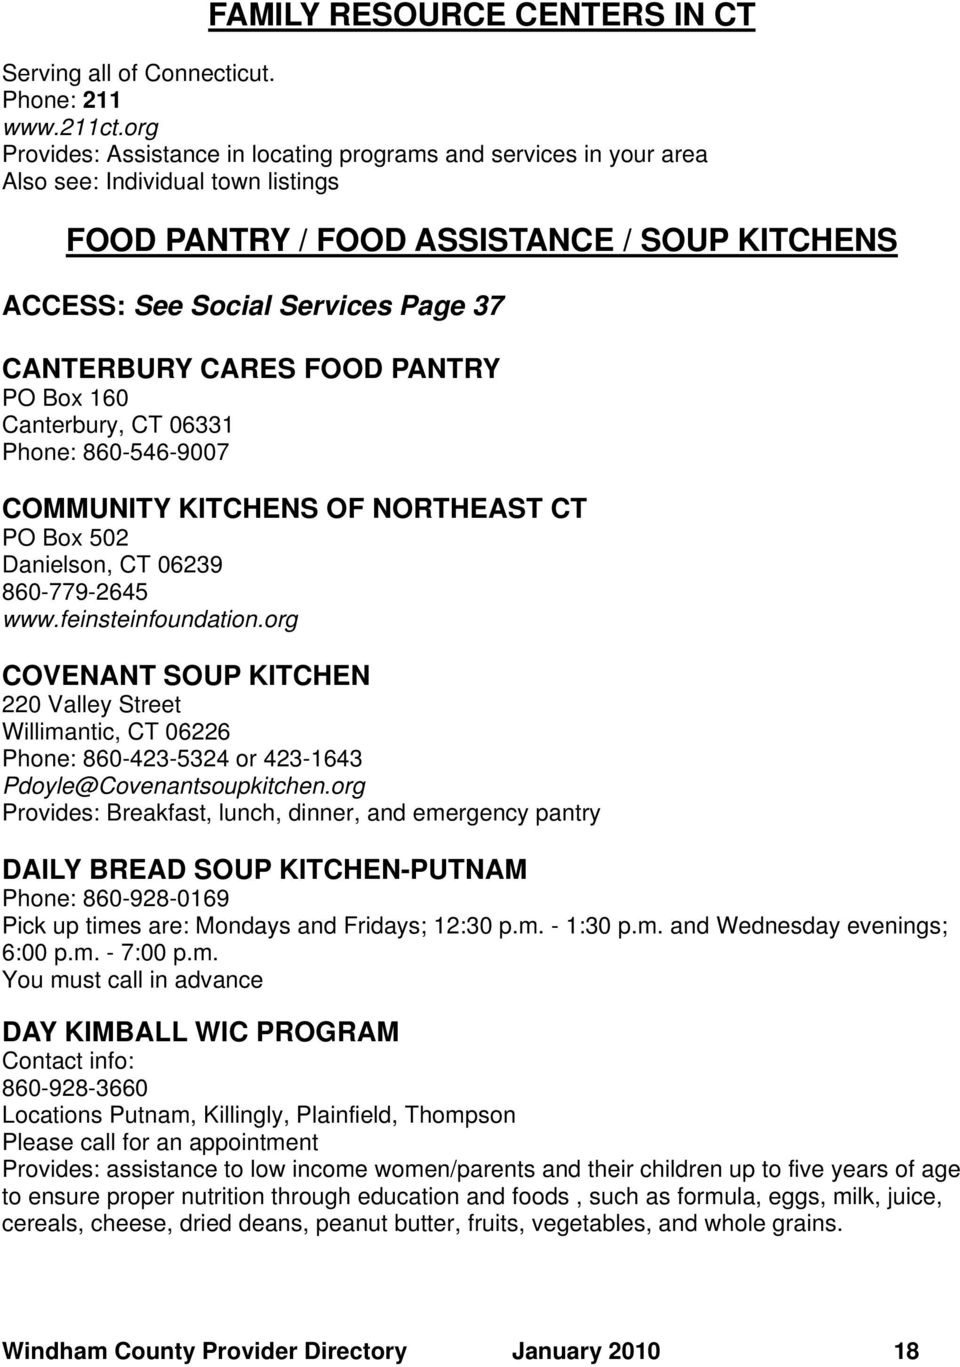 CARES FOOD PANTRY PO Box 160 Canterbury, CT 06331 Phone: 860-546-9007 COMMUNITY KITCHENS OF NORTHEAST CT PO Box 502 860-779-2645 www.feinsteinfoundation.